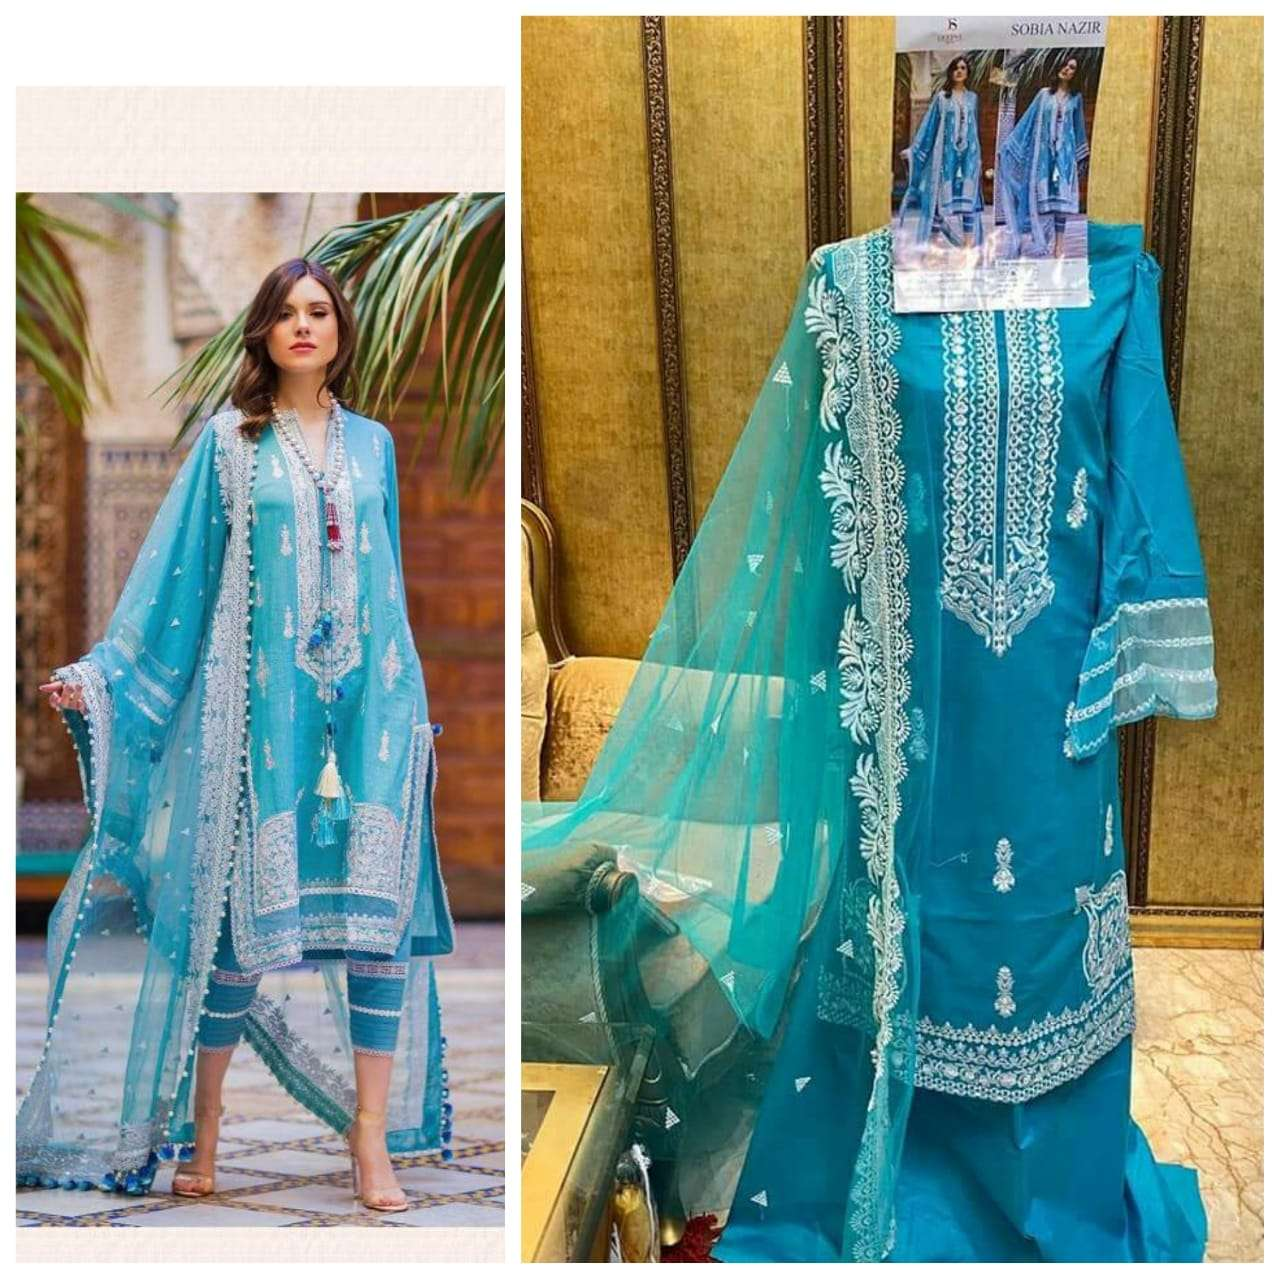 DEEPSY SUITS SOBIA NAZIR DESIGNER COTTON WITH EMBROIDERY WORK SUITS IN SINGLES